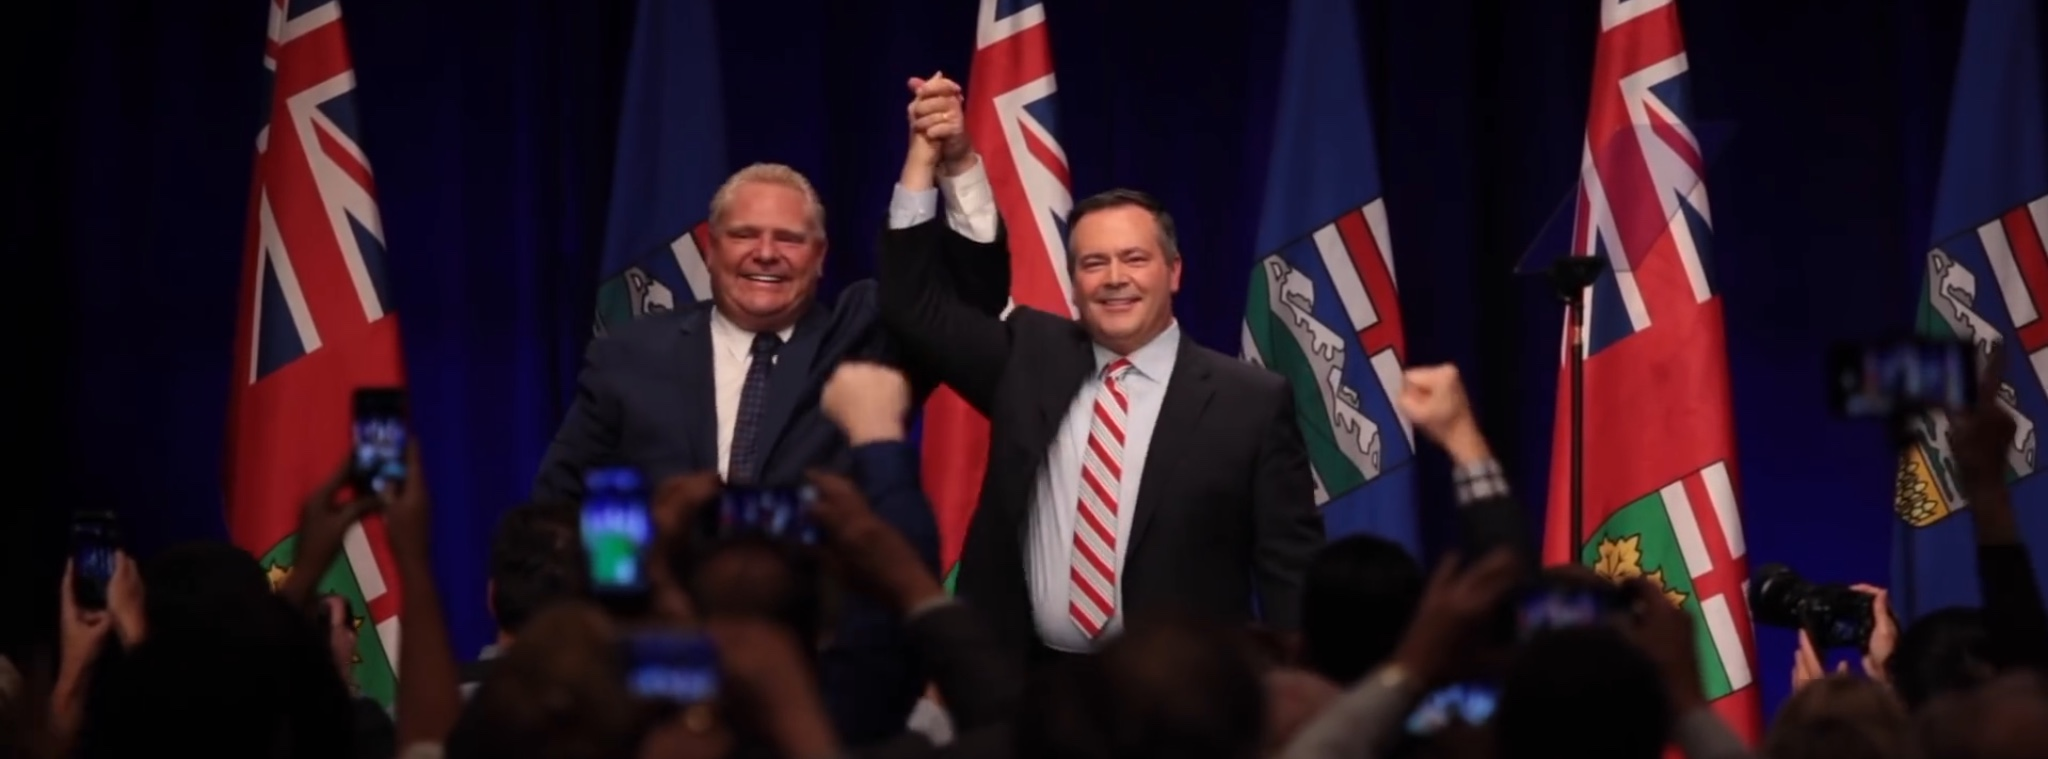 Ontario Premier Doug Ford (L) and Alberta's United Conservative Party leader Jason Kenney show their solidarity in opposing Canadian Prime Minister Justin Trudeau's carbon tax. YouTube screenshot, Oct. 6, 2018.